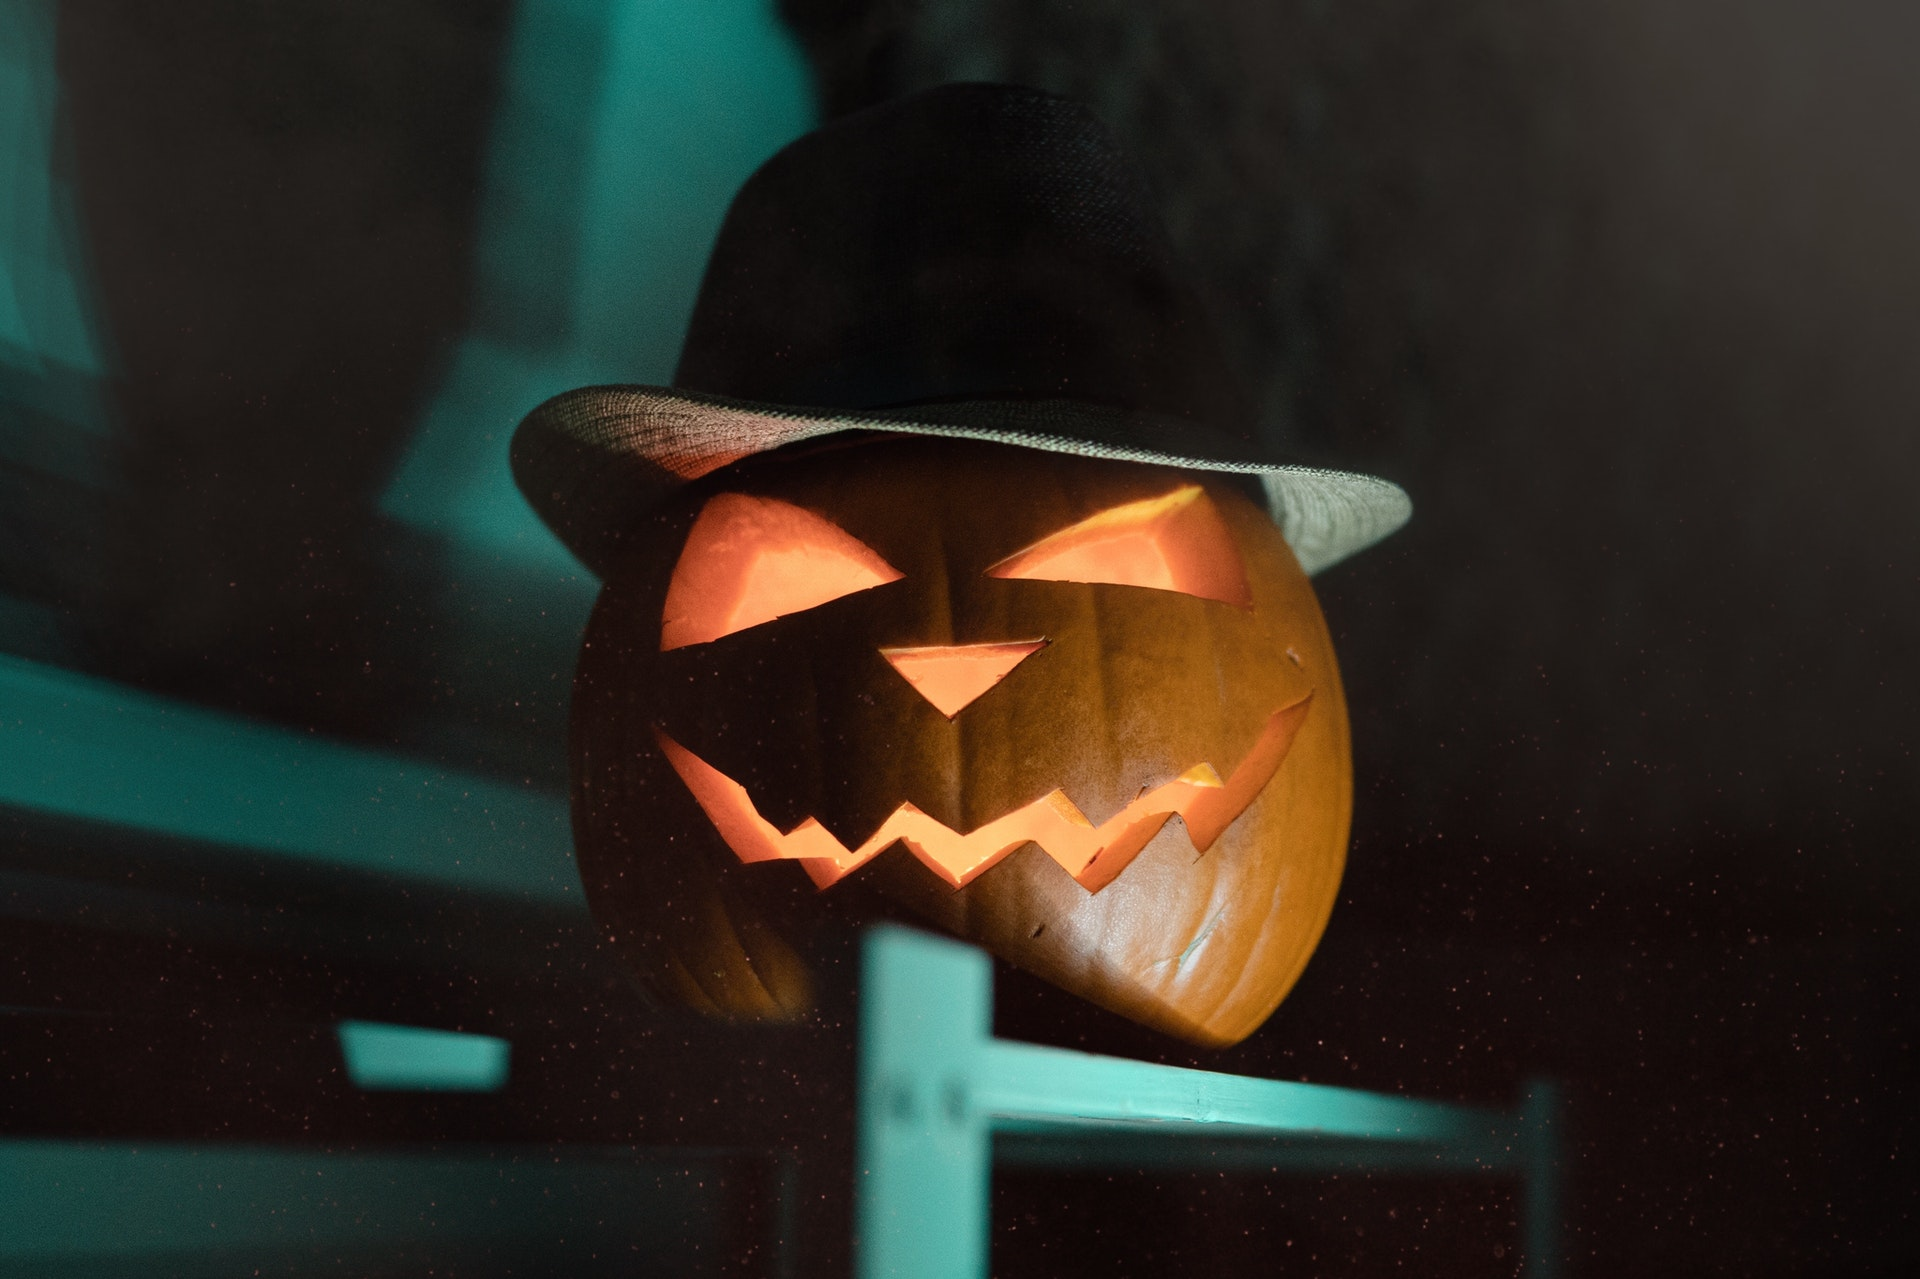 Legend of Jack O' Lantern